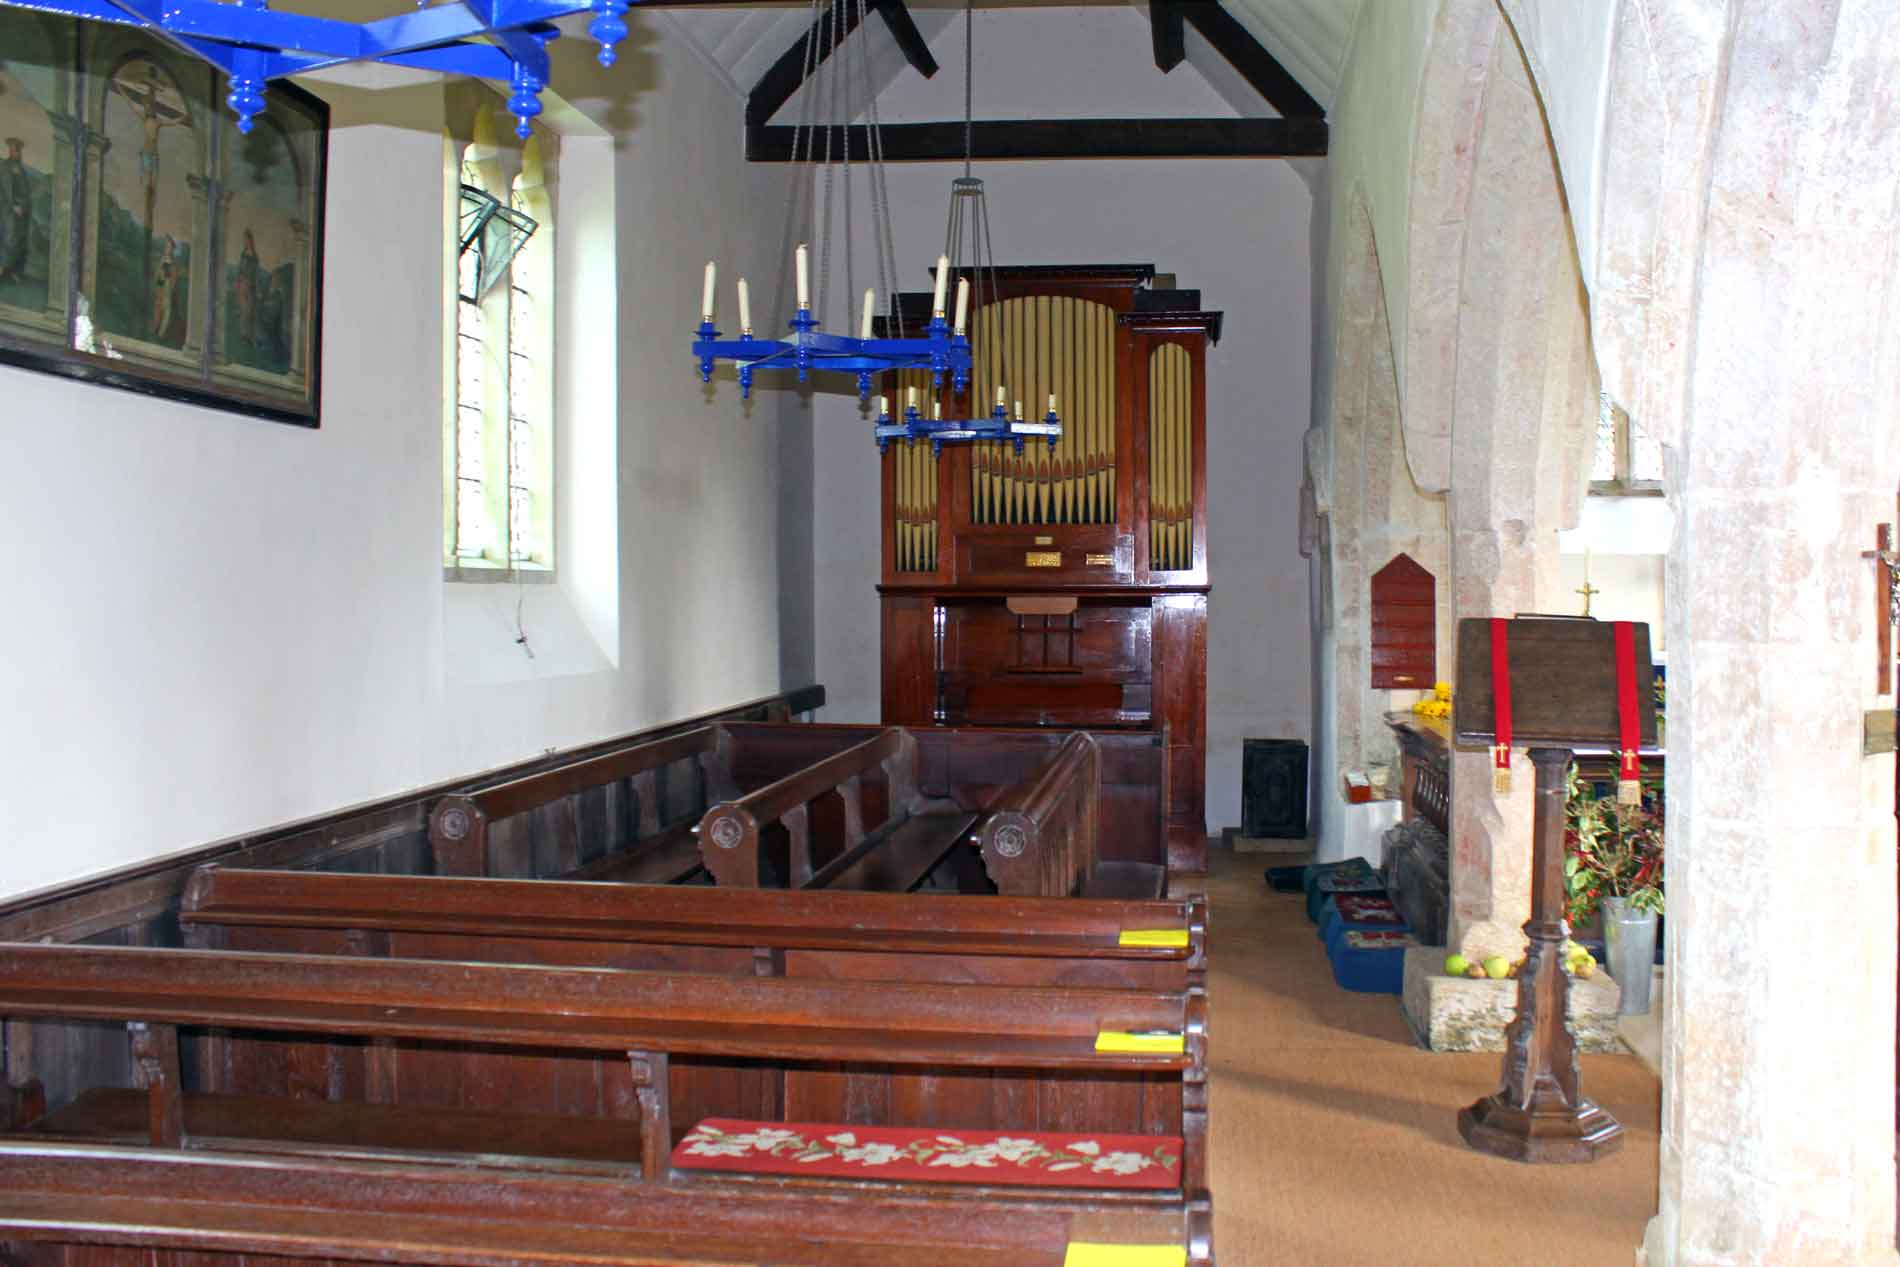 North Arcade of Little Badminton Church with the Organ